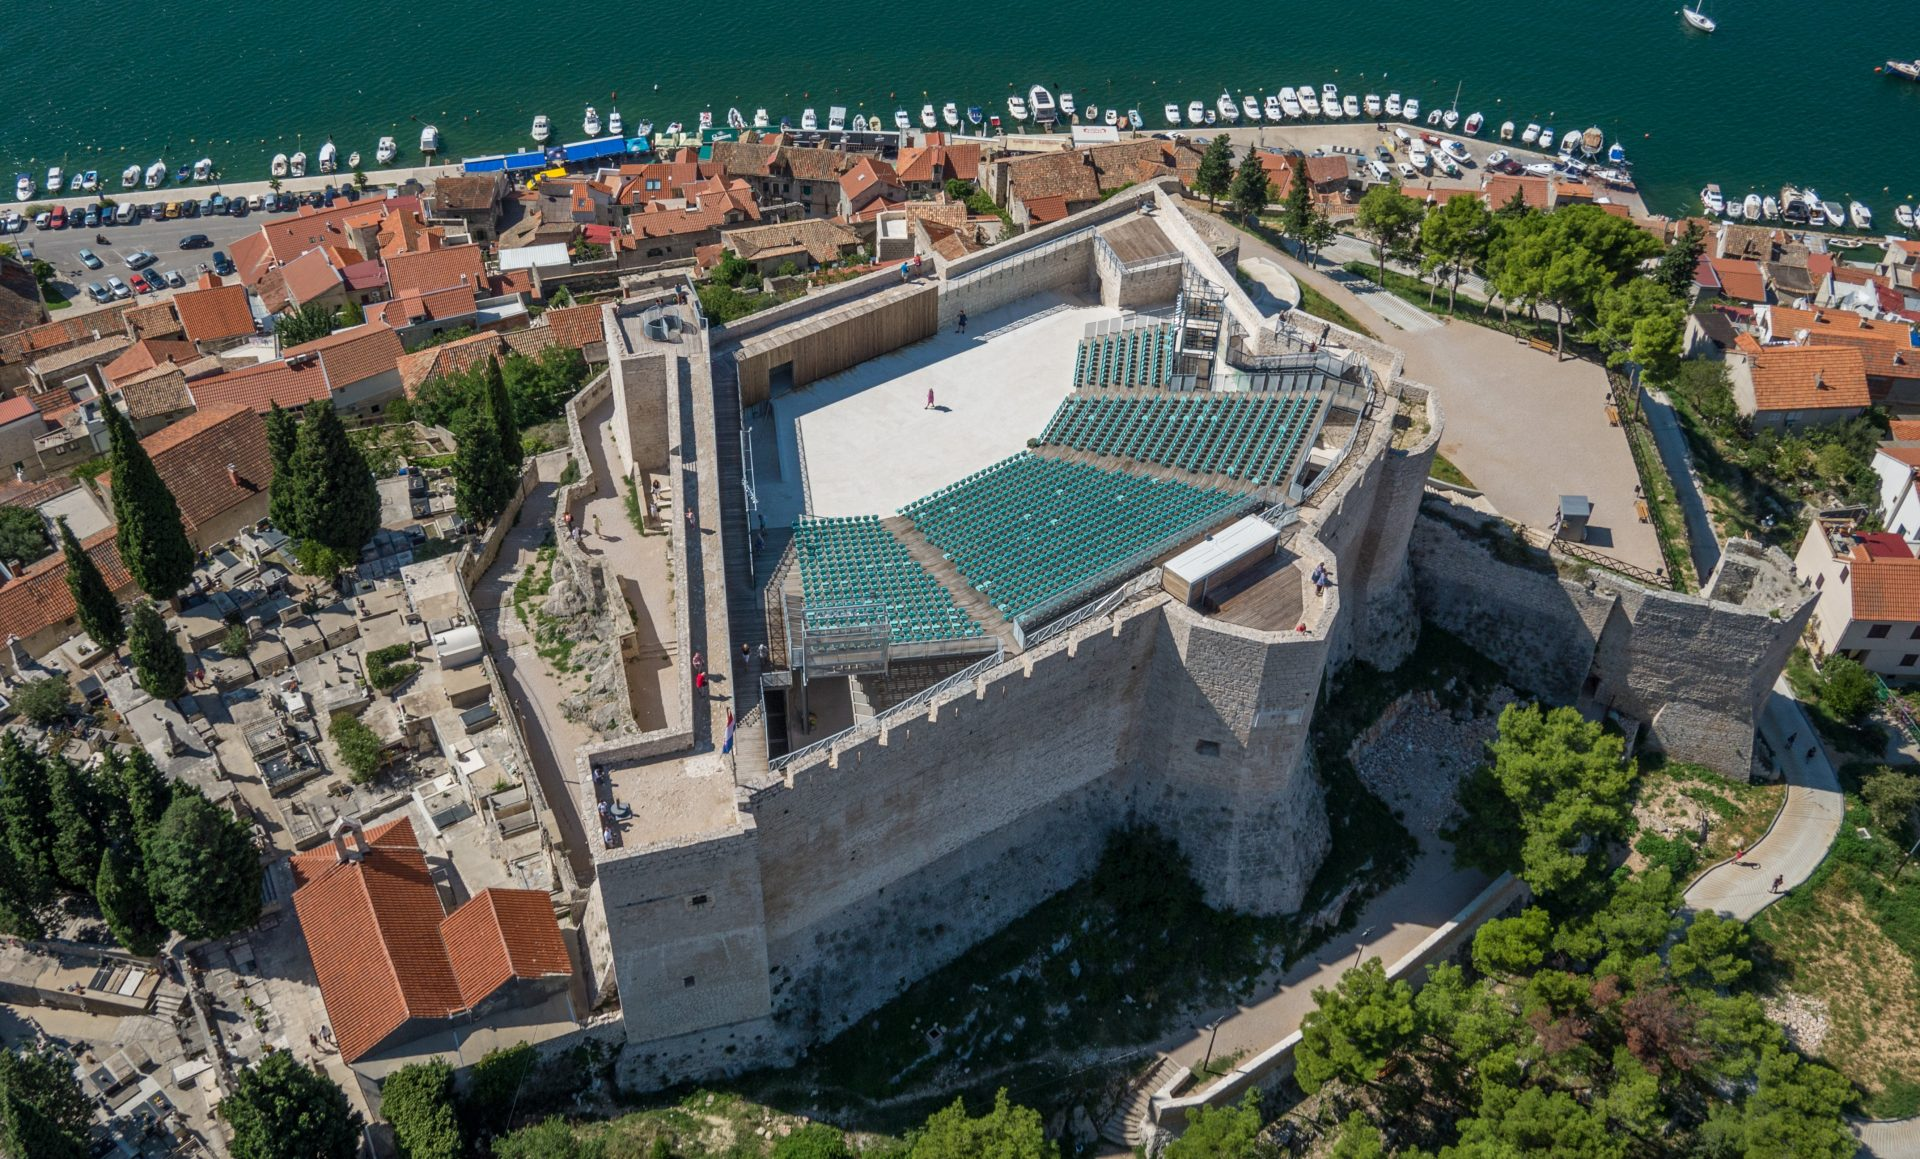 pañuelo de papel Funeral asignación  Project Fortress ReInvented listed as a positive example of modern culture  management - Interreg Croatia - Bosnia and Herzegovina - Montenegro